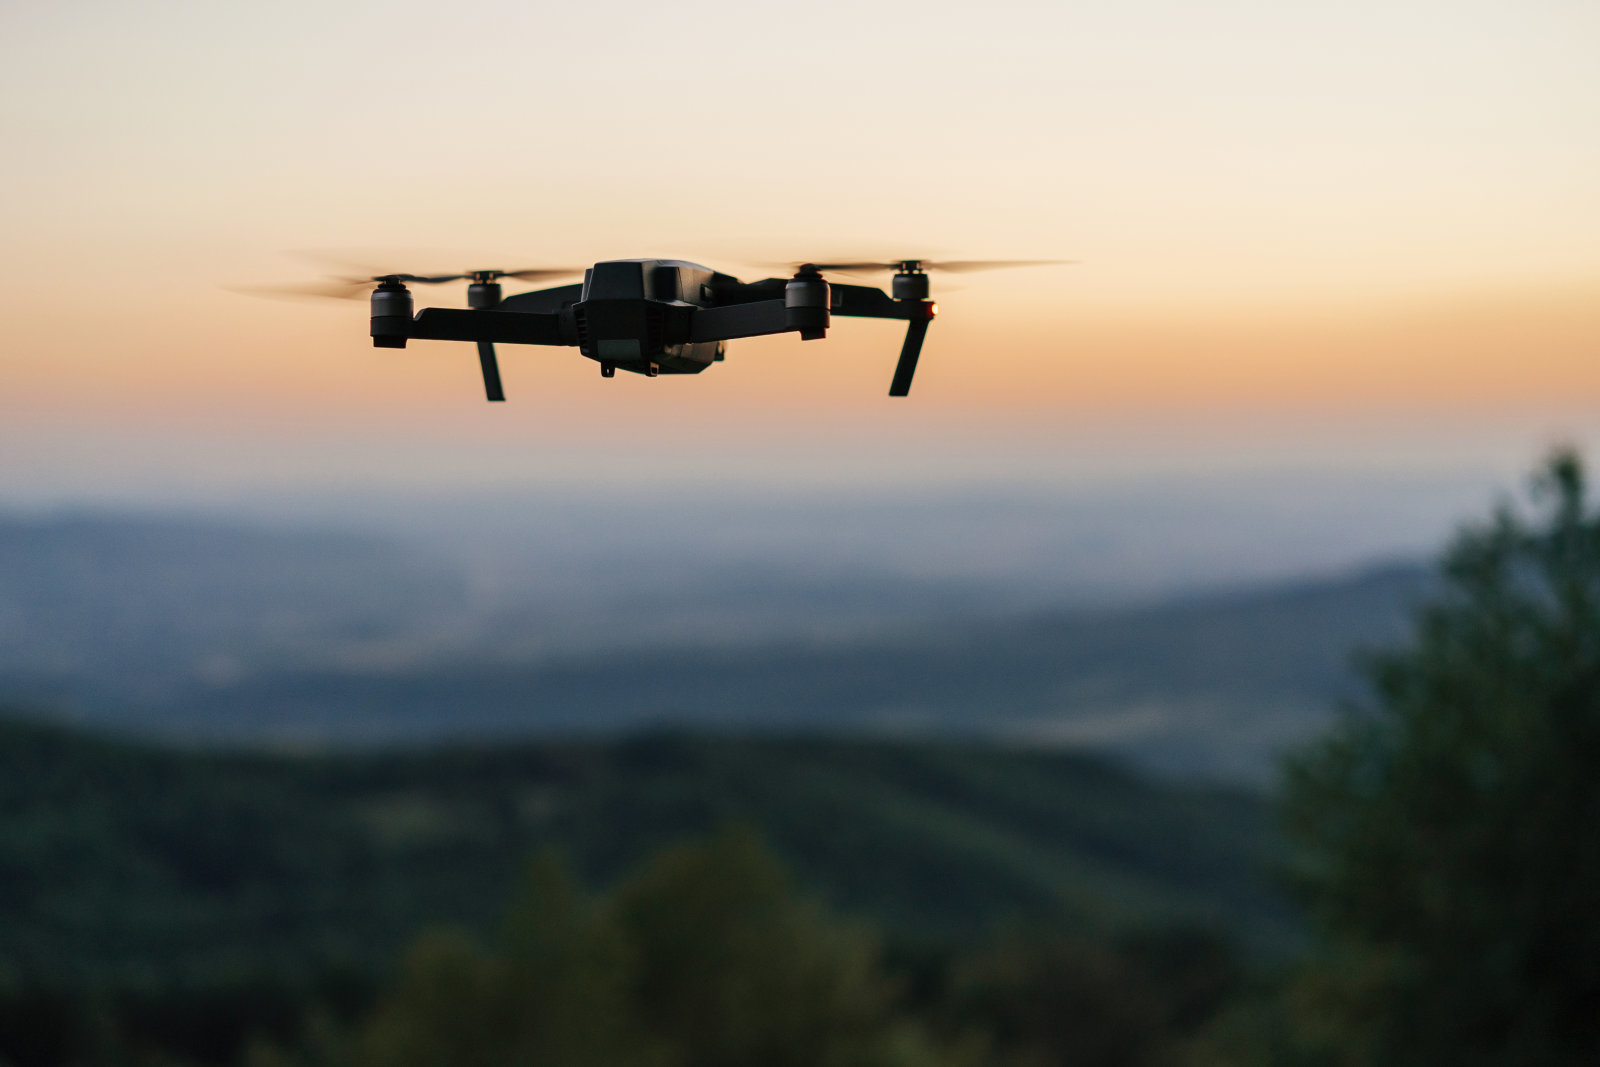 Flying drone at dusk